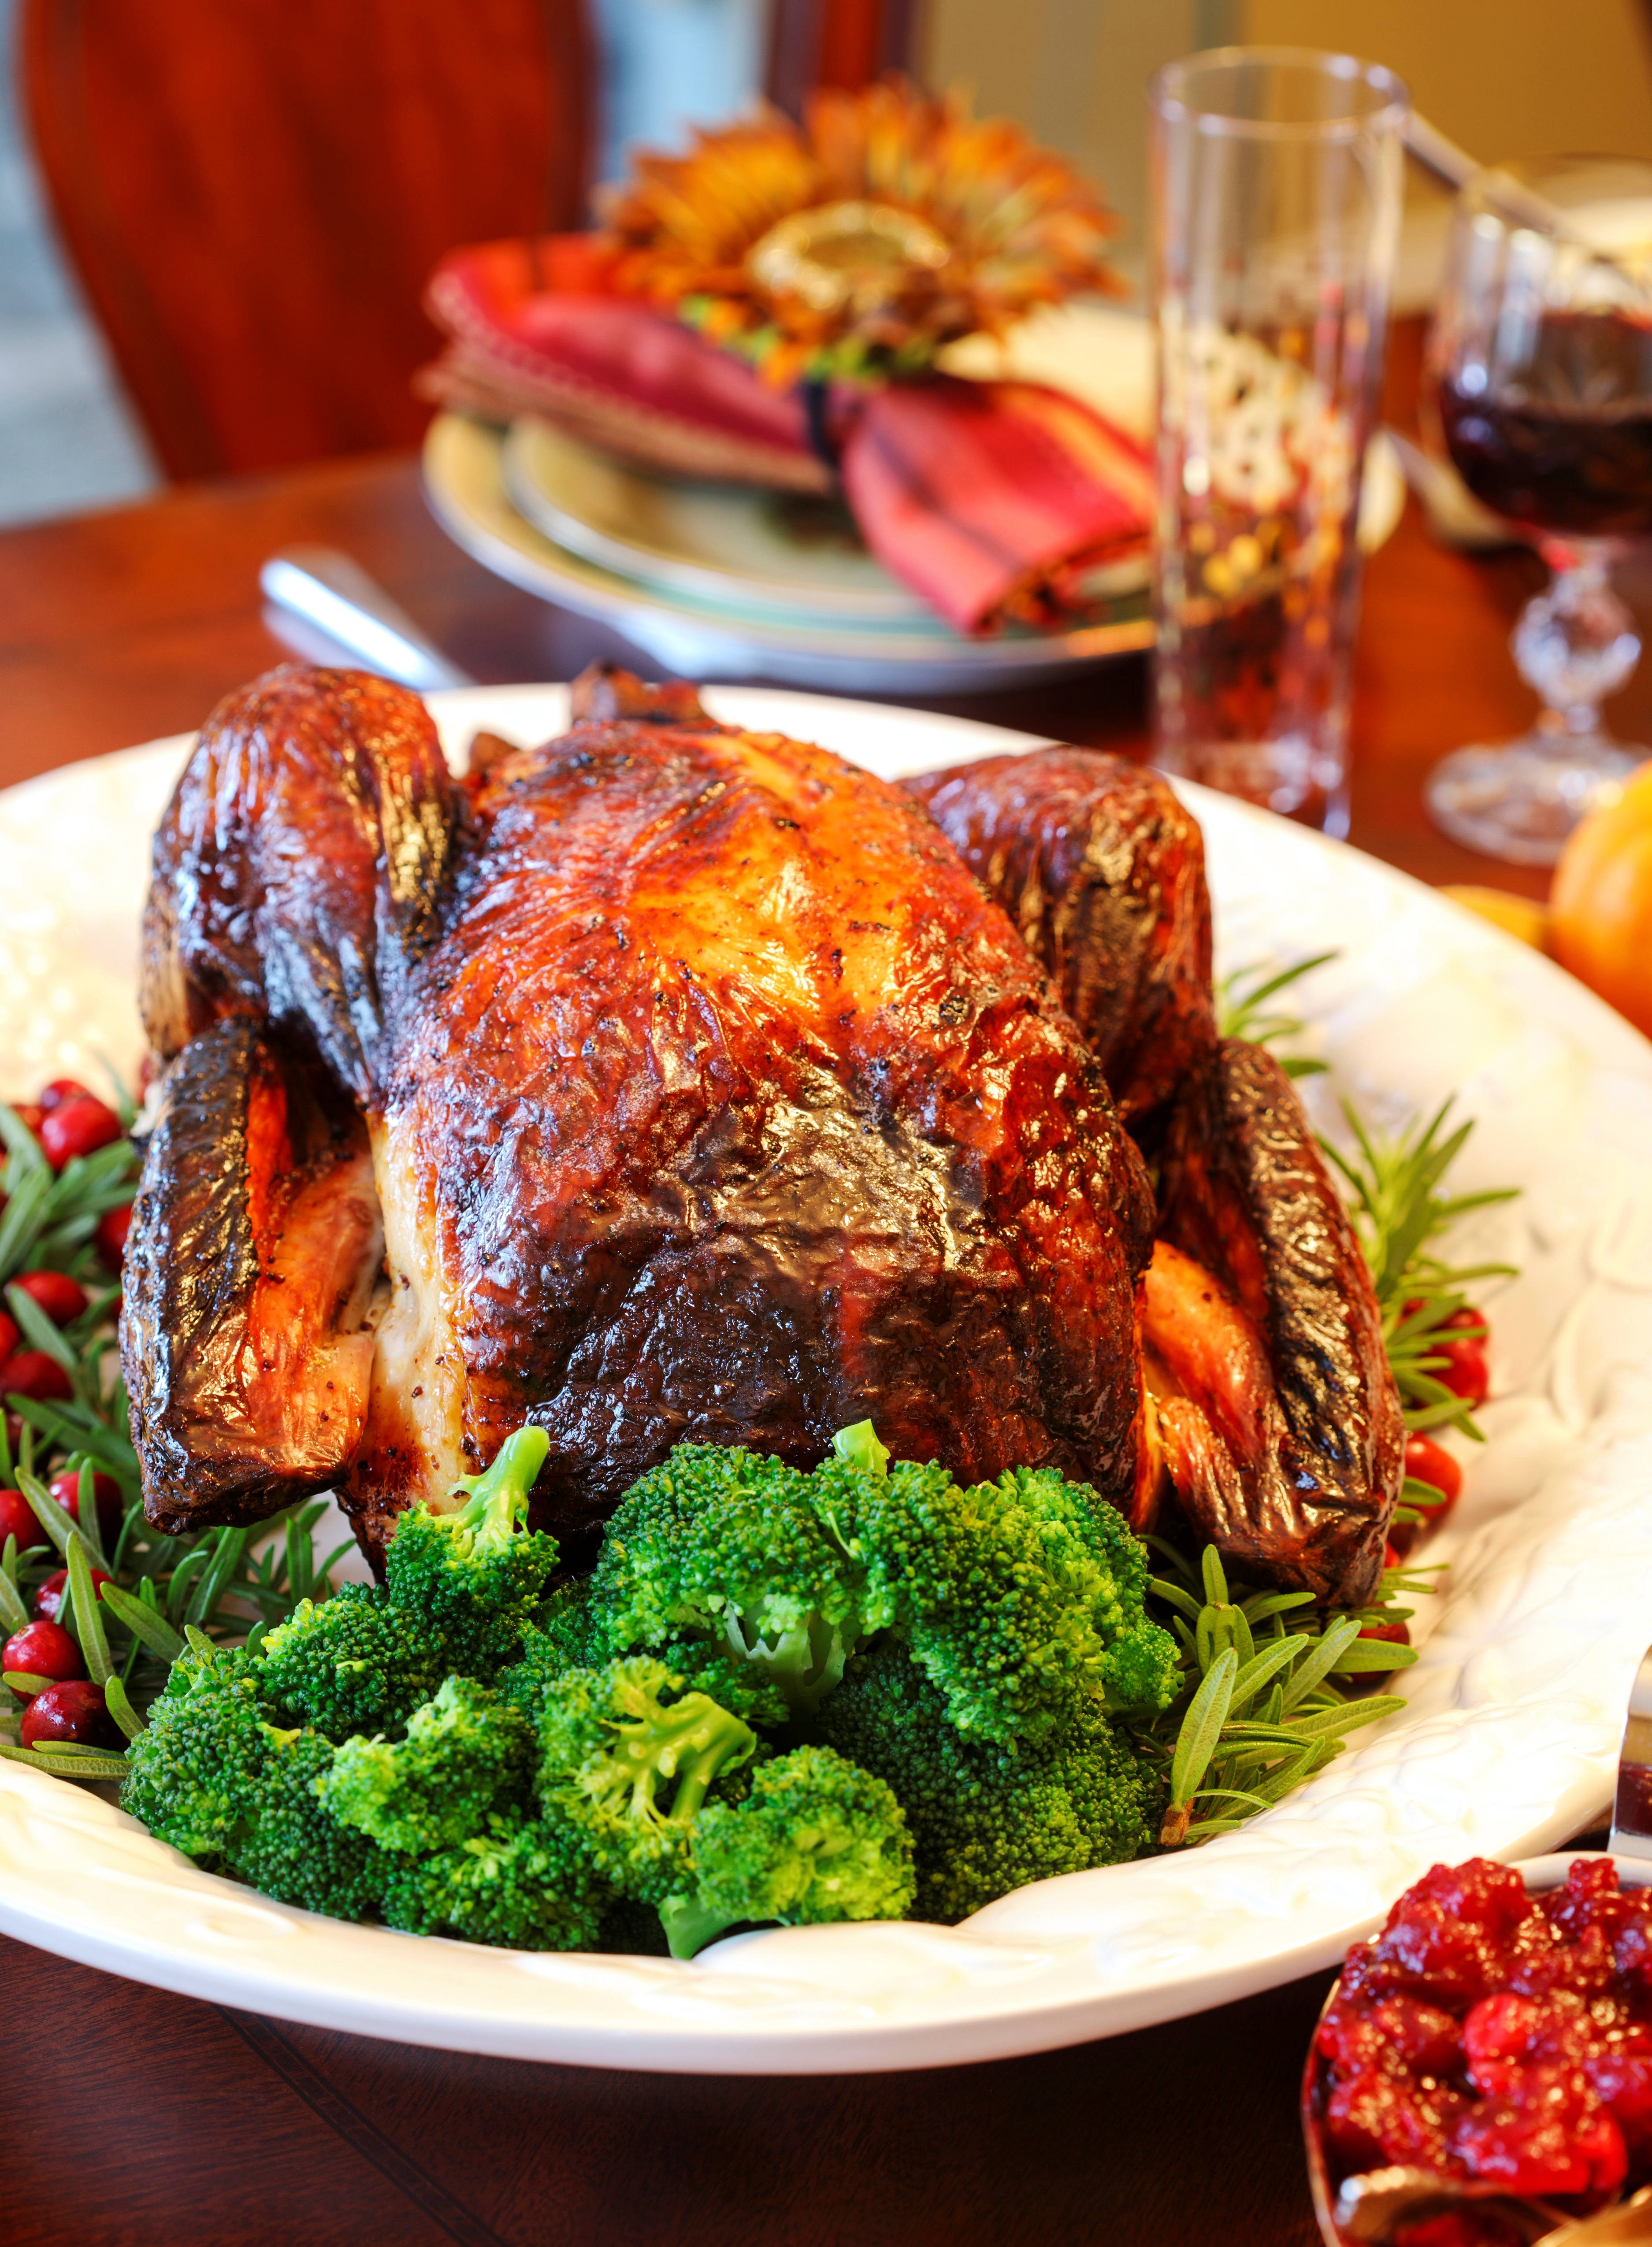 A photo of a Thanksgiving turkey on a table with broccoli and other vegetables